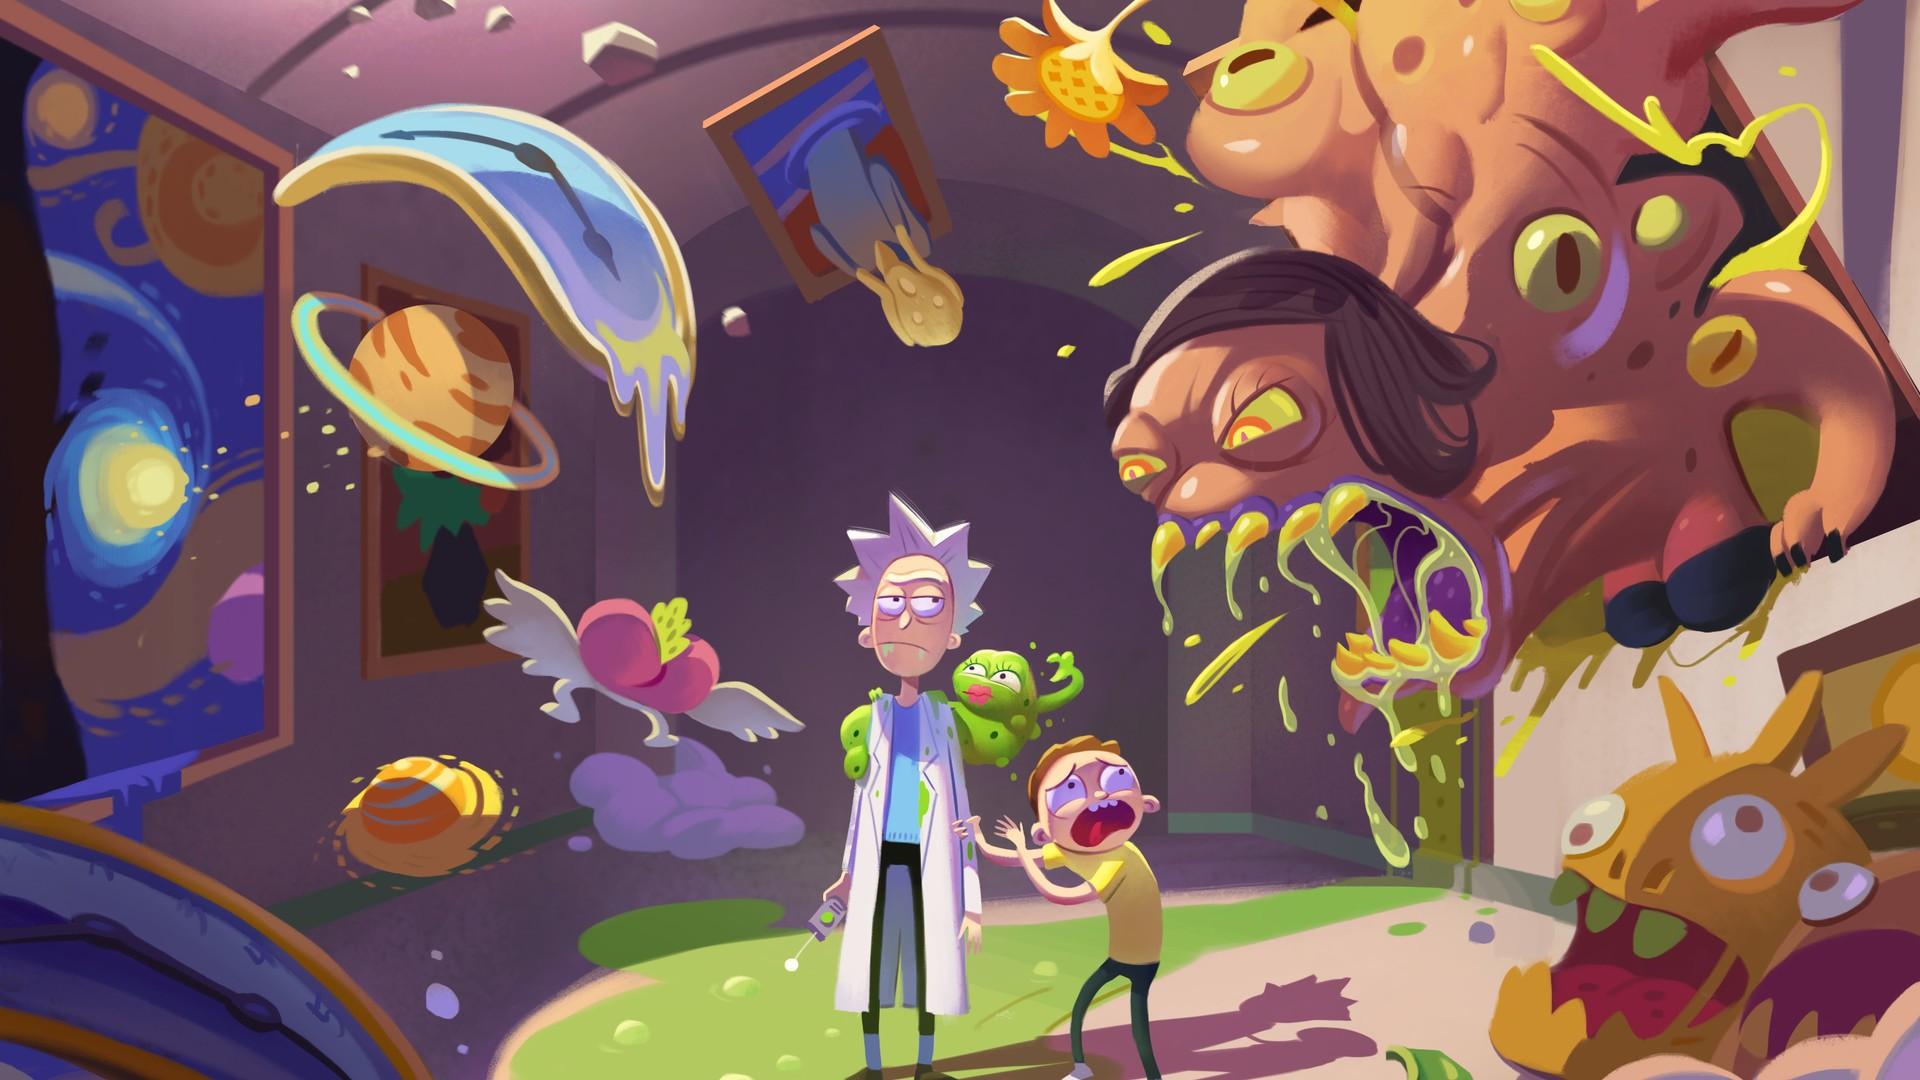 Rick And Morty Desktop Wallpapers With High-resolution - Rick And Morty Wallpaper 4k , HD Wallpaper & Backgrounds